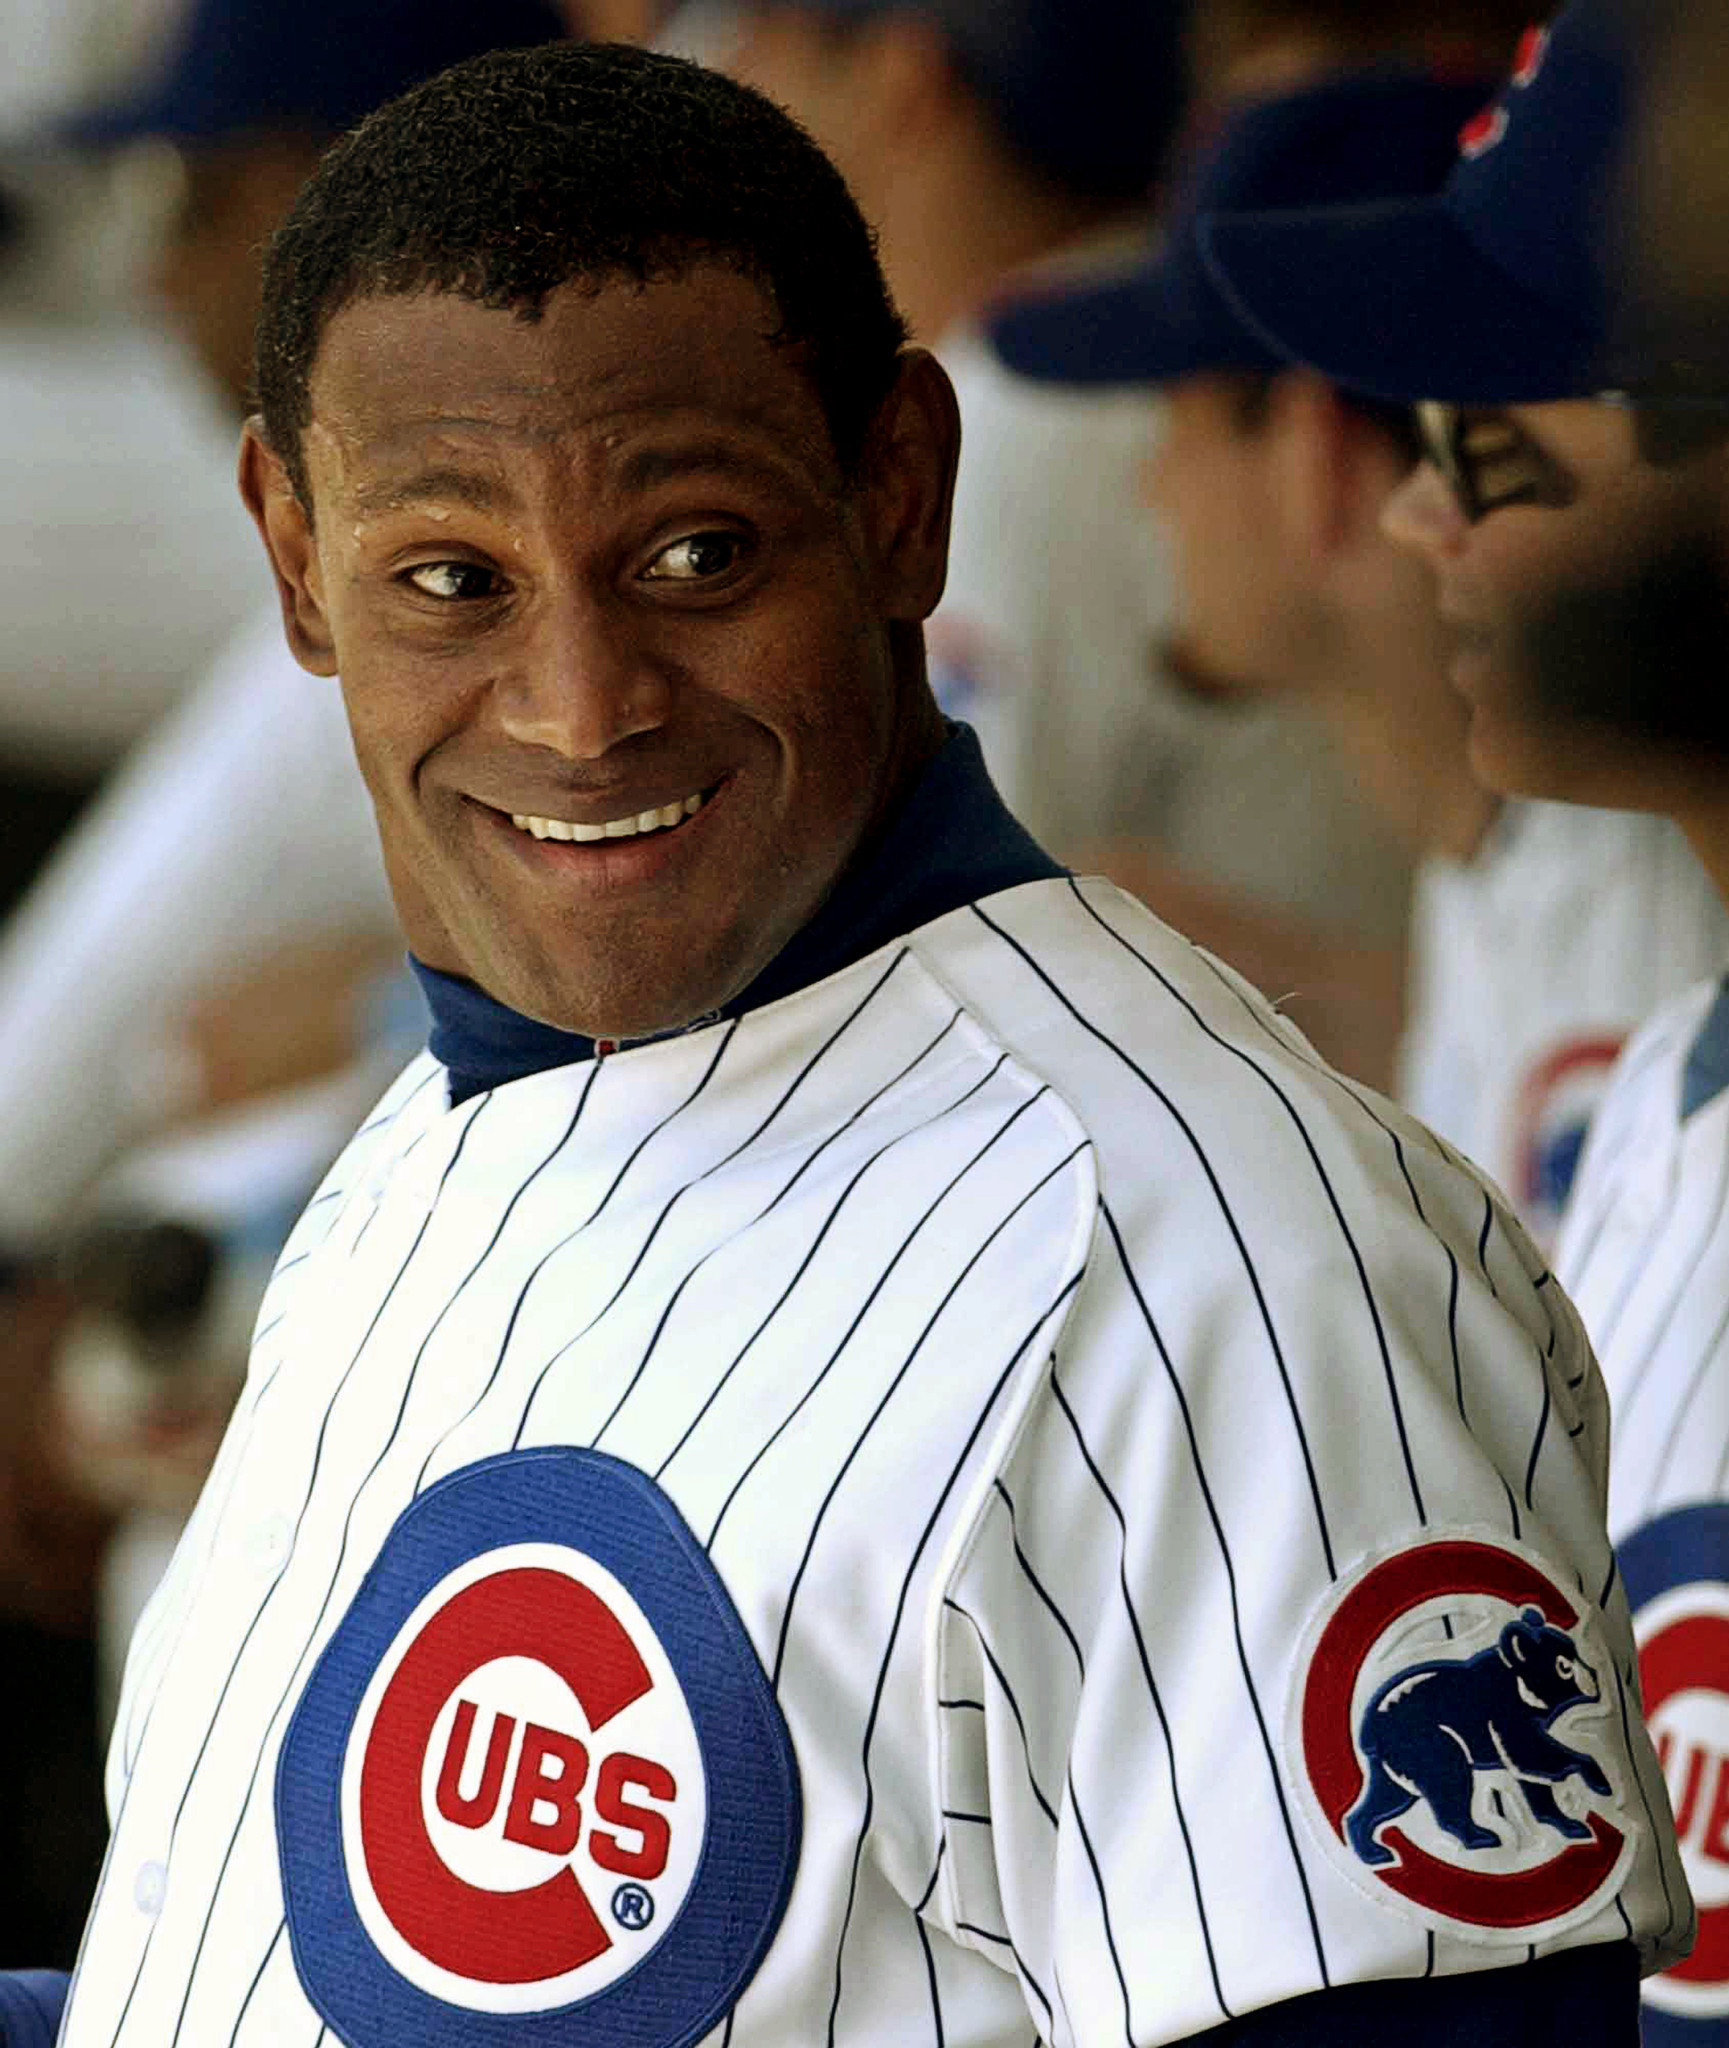 sammy sosa - photo #36